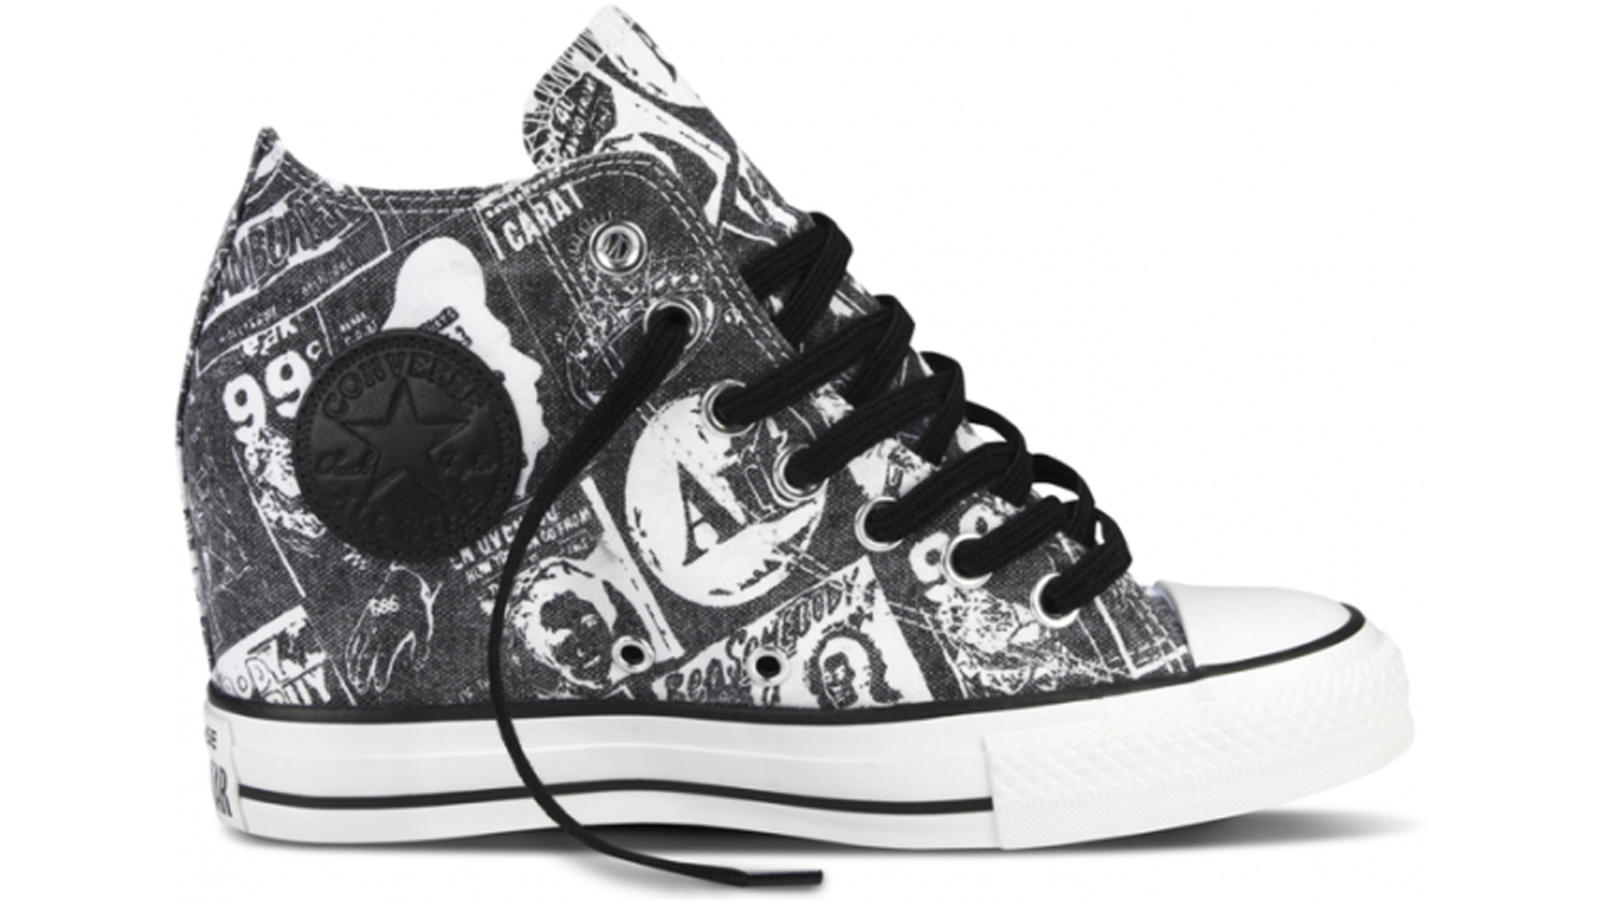 0530345a96f622 Converse Celebrates the Creative Spirit of Andy Warhol - Nike News